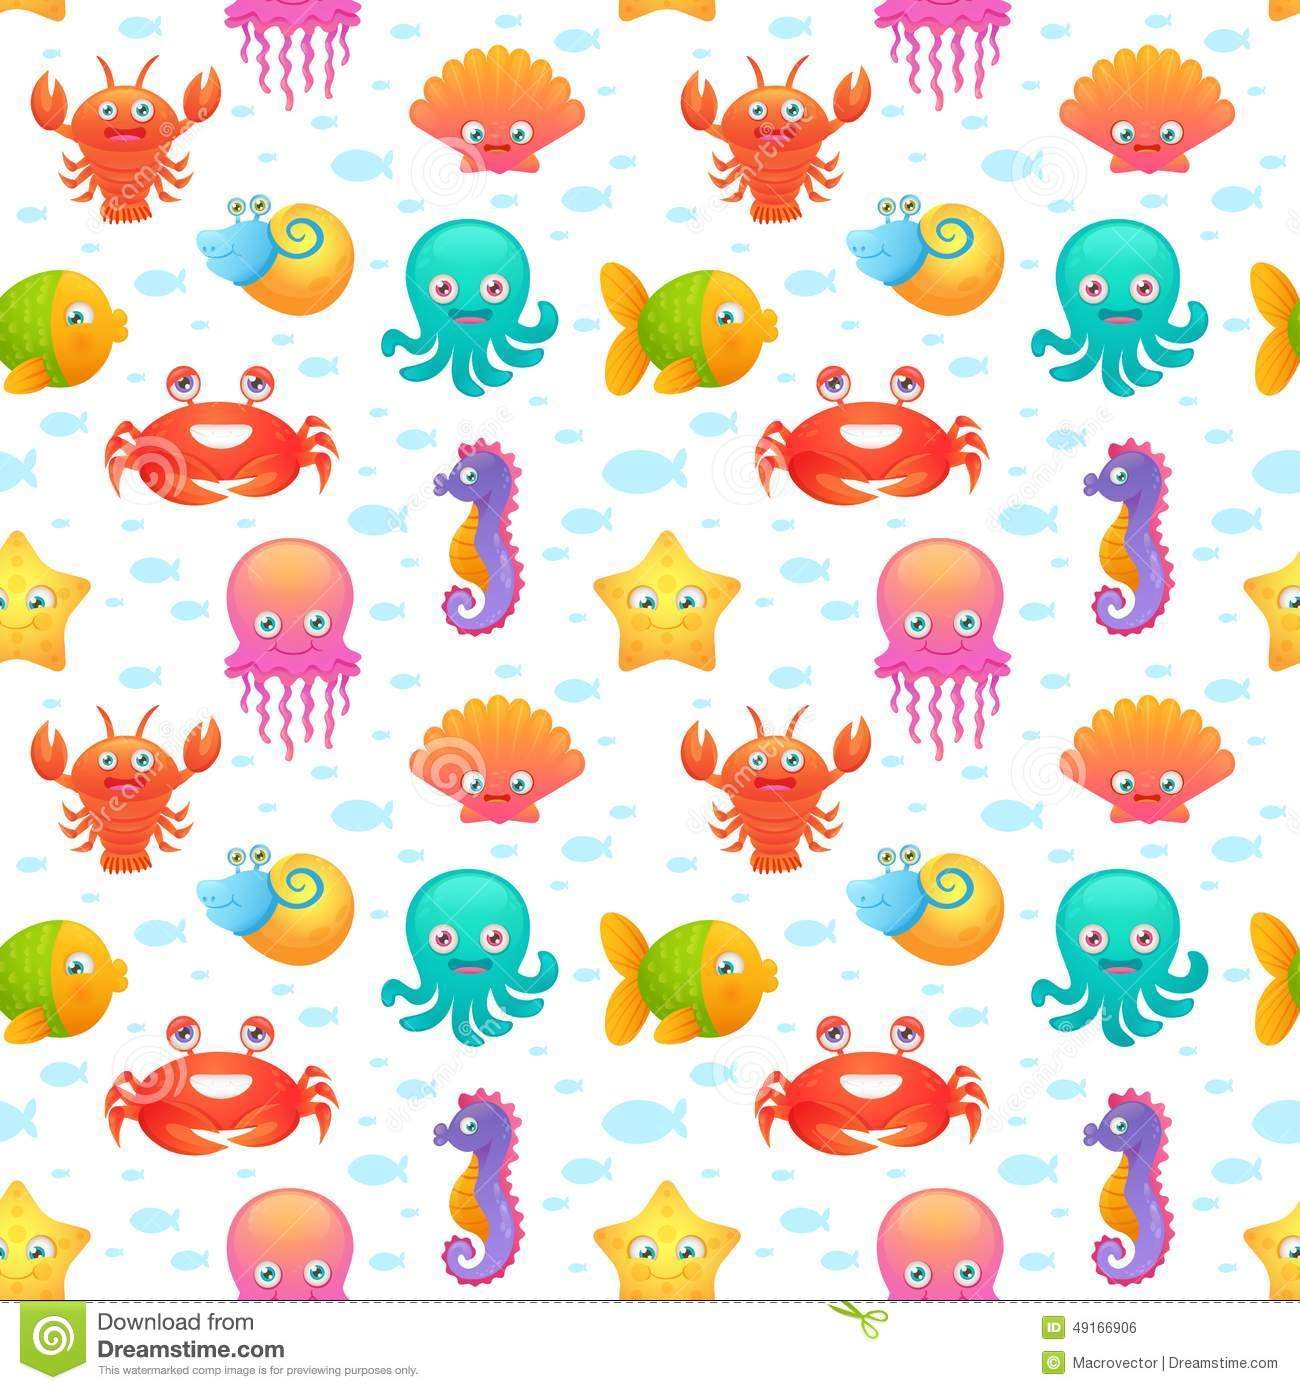 Pattern Images Stock Photos amp Vectors  Shutterstock